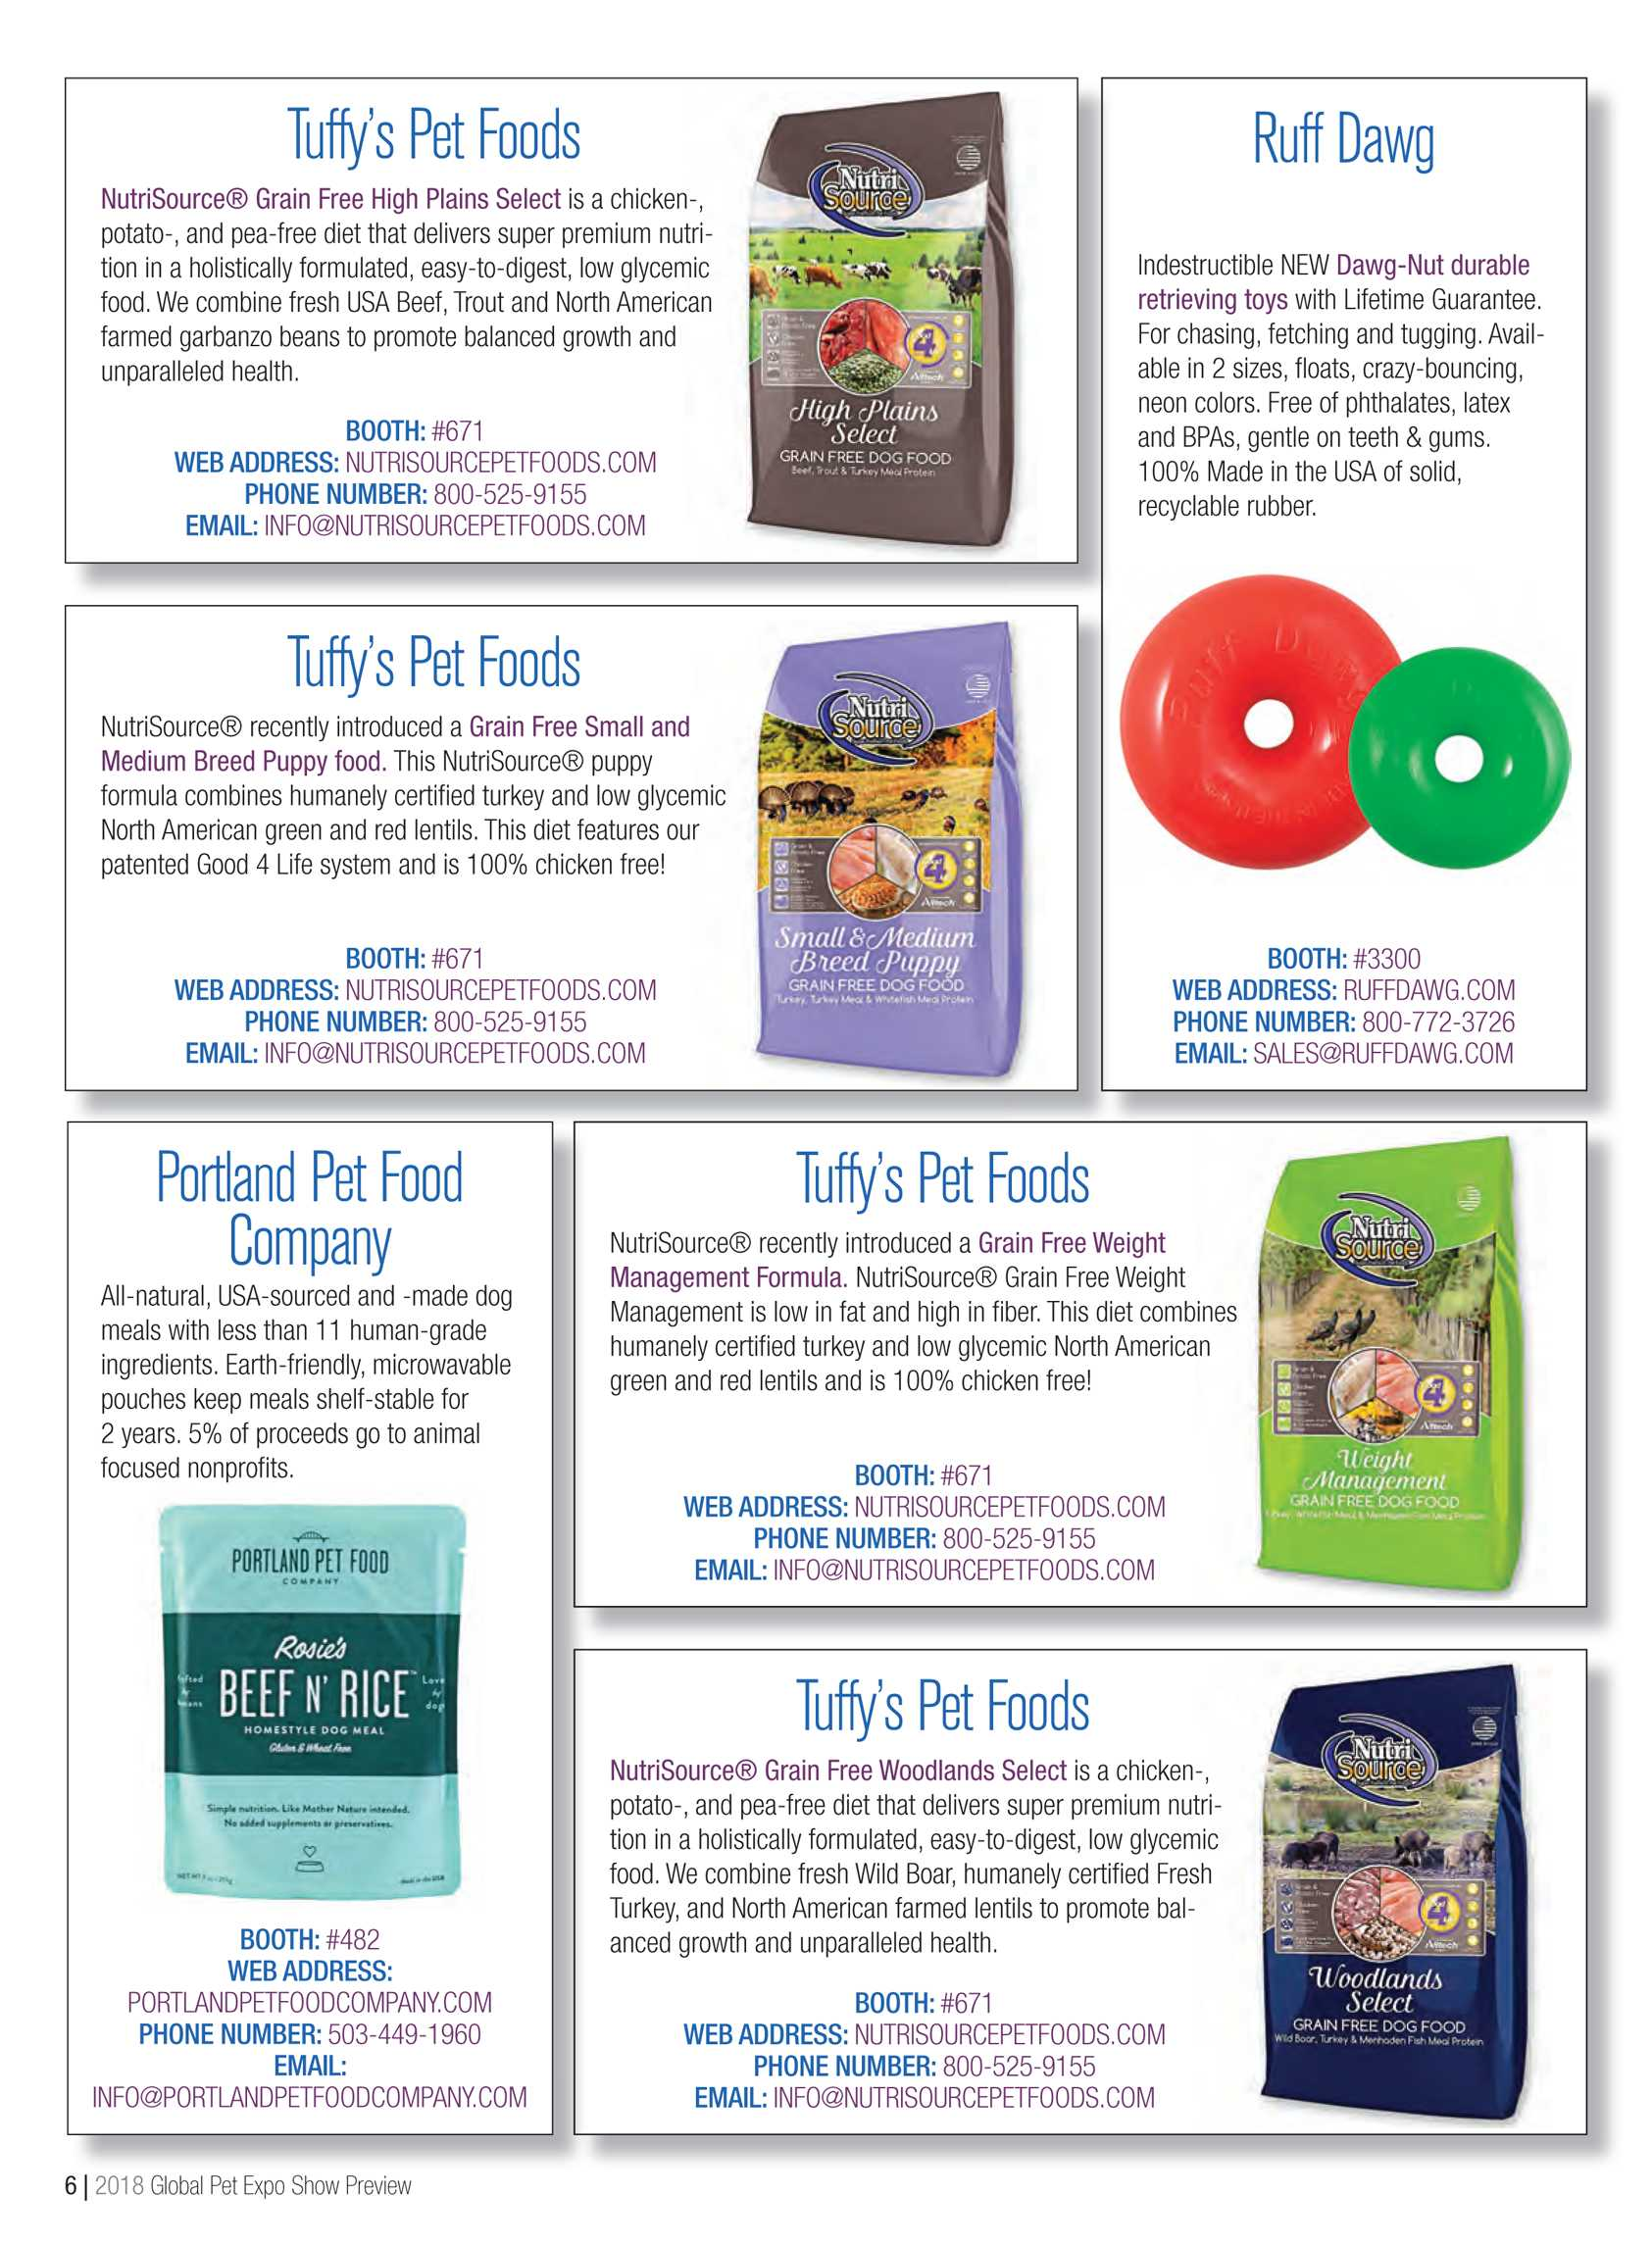 Pet Product News - February 2018 - page S6